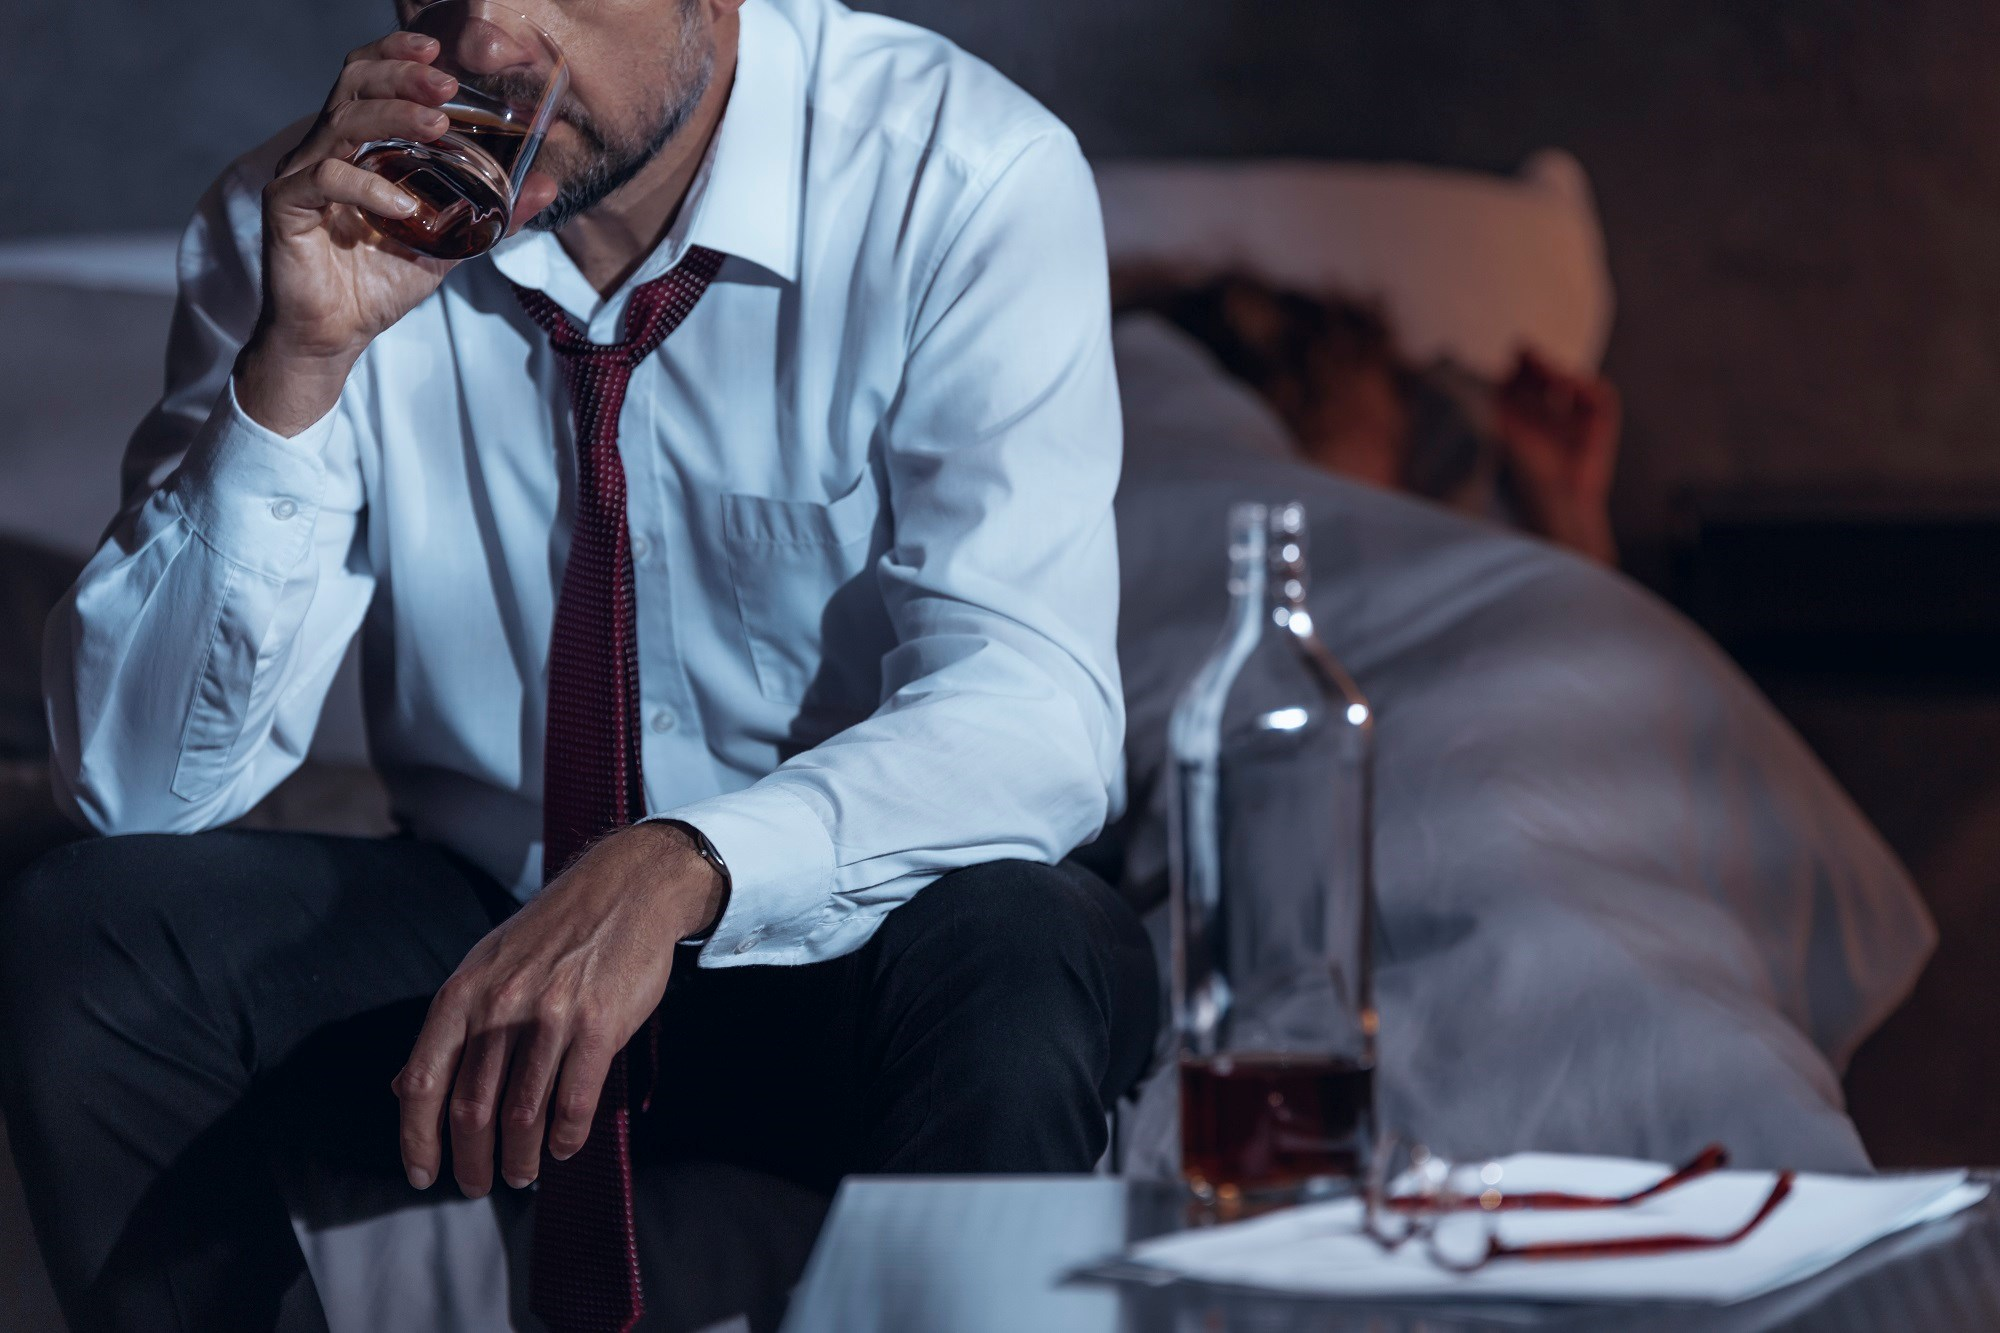 Assessing the Risks of Using Alcohol as a Sleep Aid